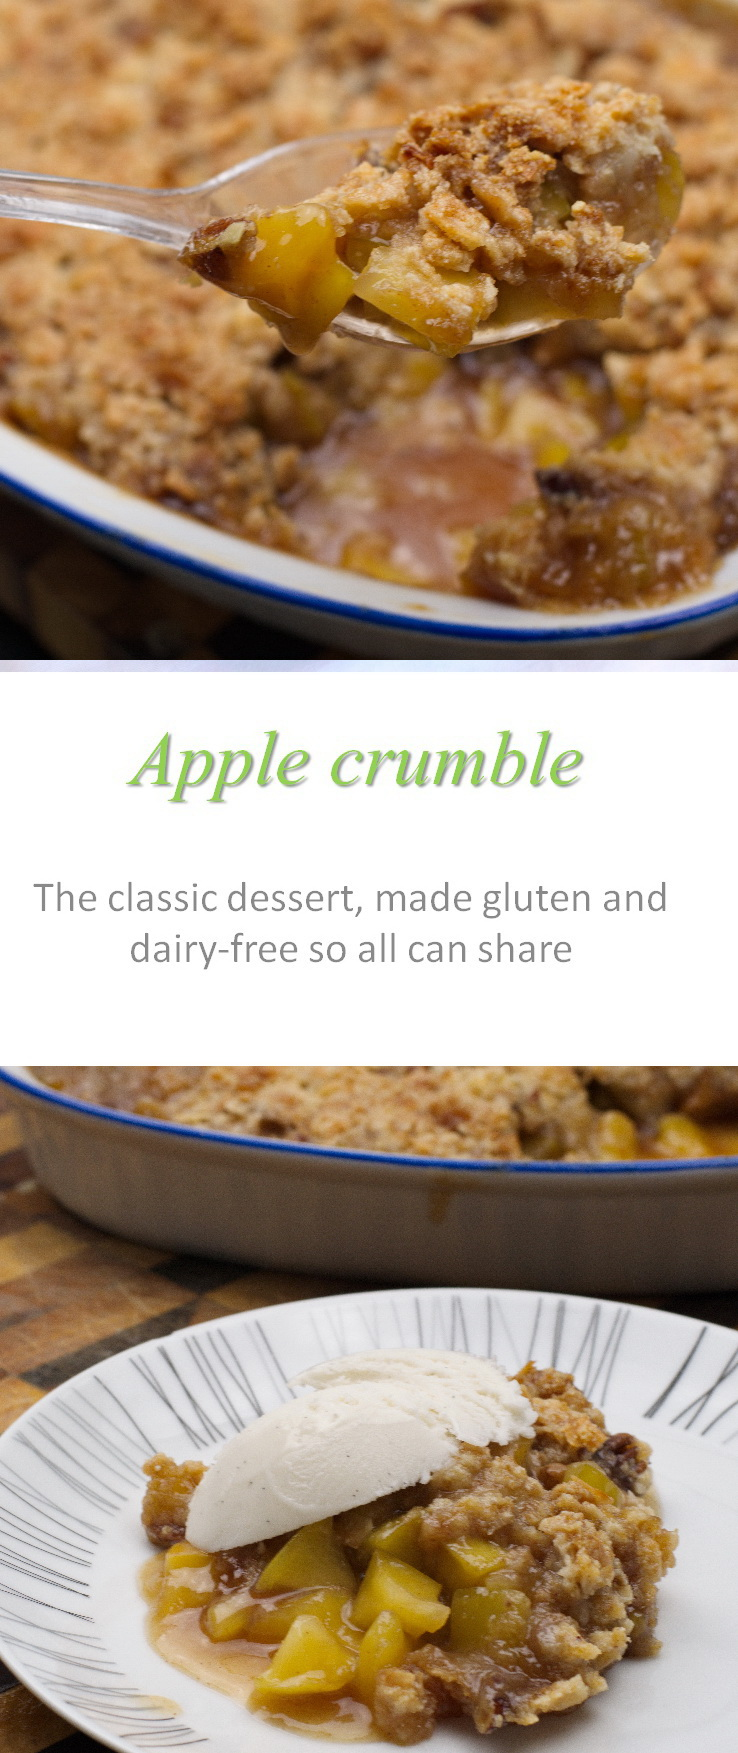 Cinnamon and oats in the crumble topping, yummy apple slices - awesome apple crumble topped with whatever your heart desires! #applecrumble